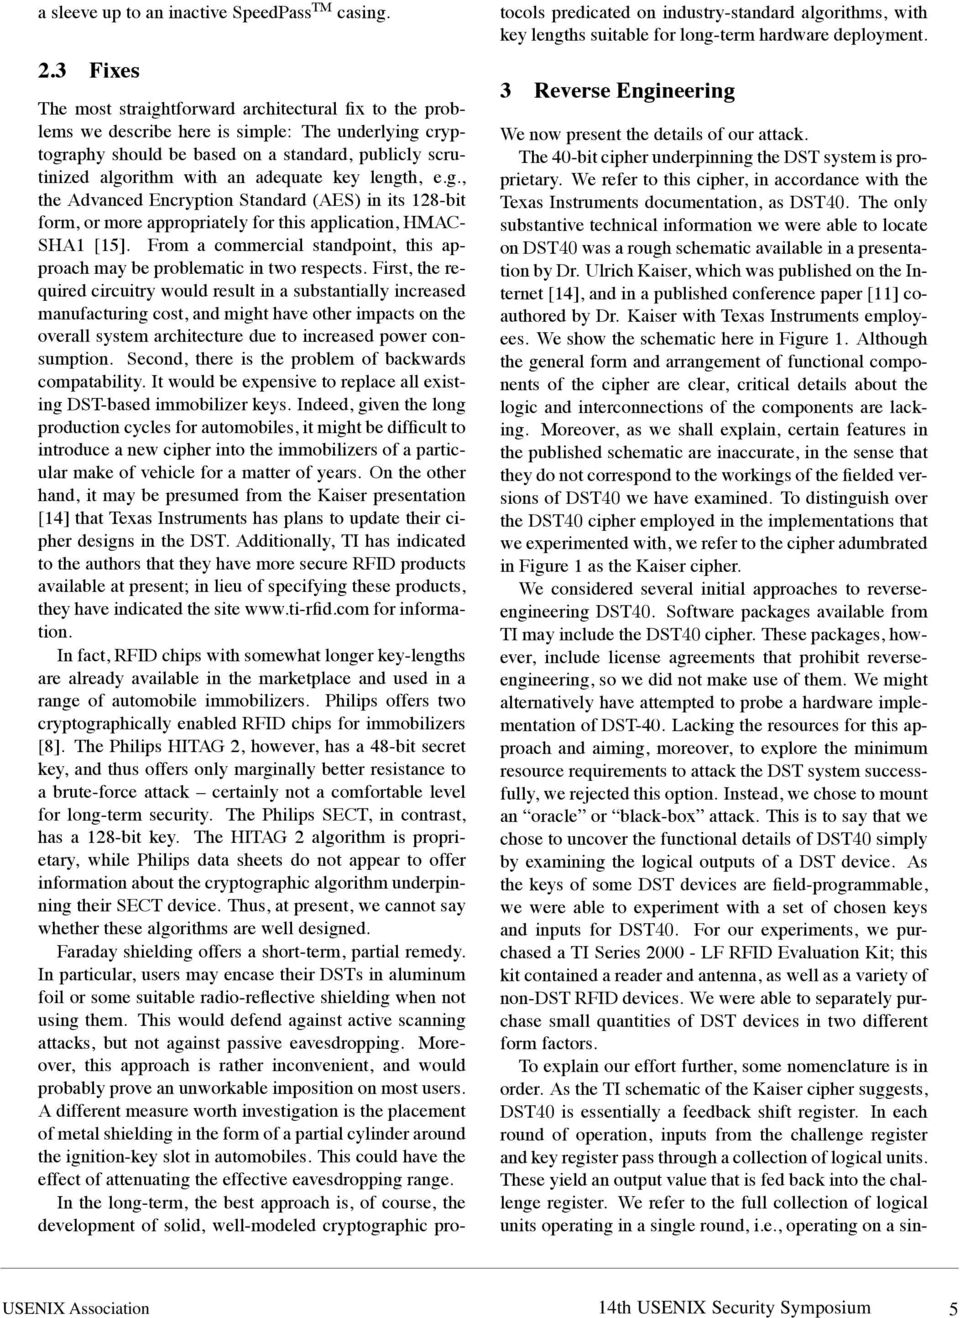 adequate key length, e.g., the Advanced Encryption Standard (AES) in its 128-bit form, or more appropriately for this application, HMAC- SHA1 [15].